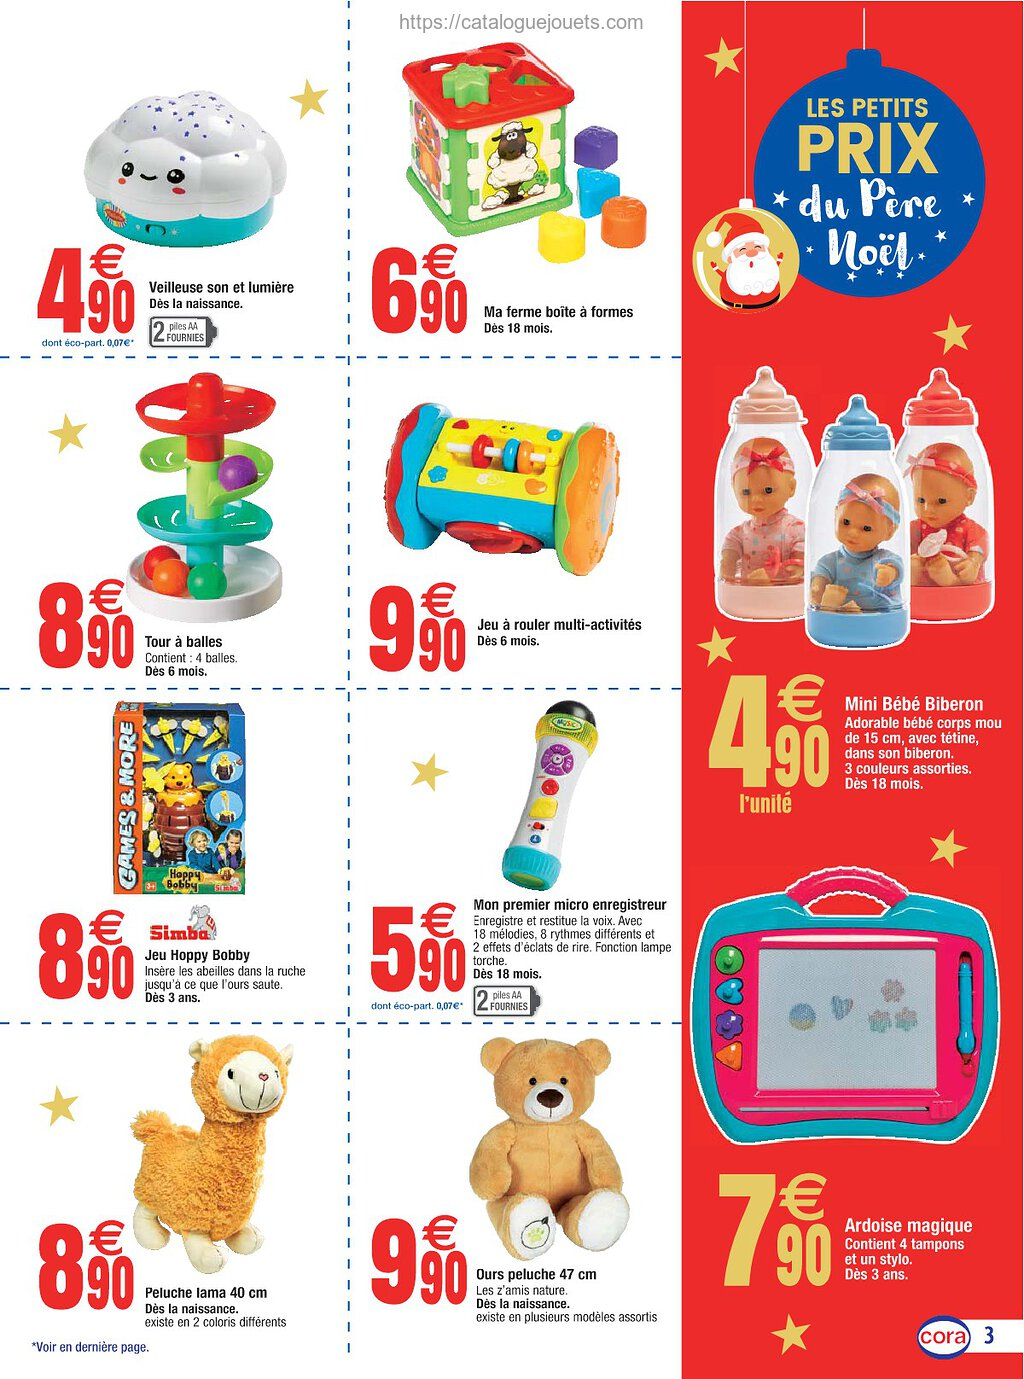 Catalogue Cora Noël 2019 Catalogue De Jouets